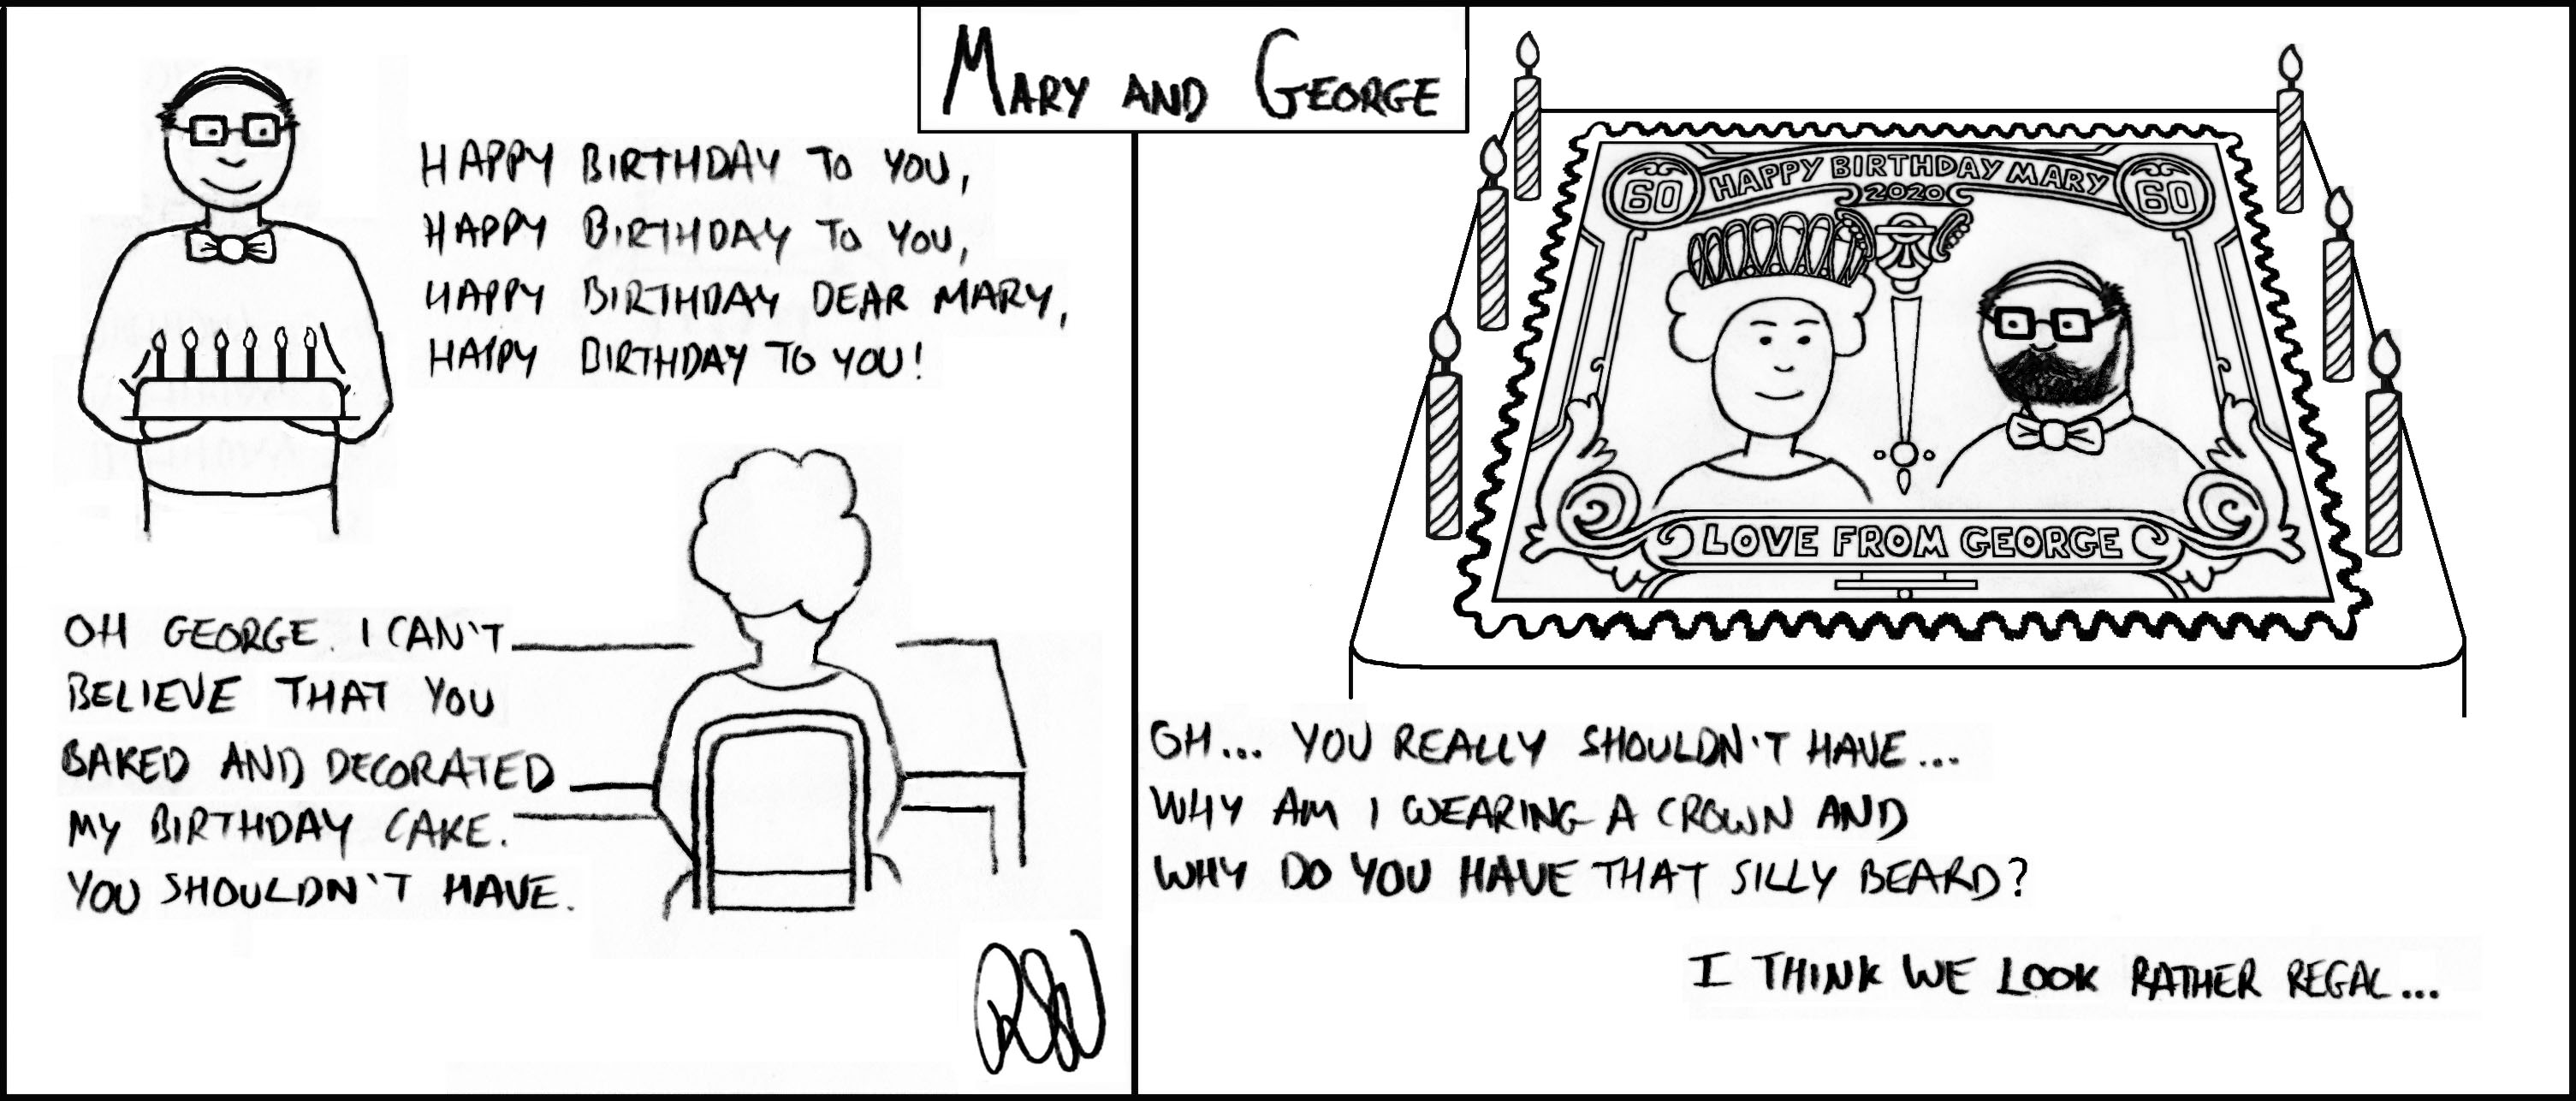 Mary_and_George cartoon by Ricky Verra episode 12